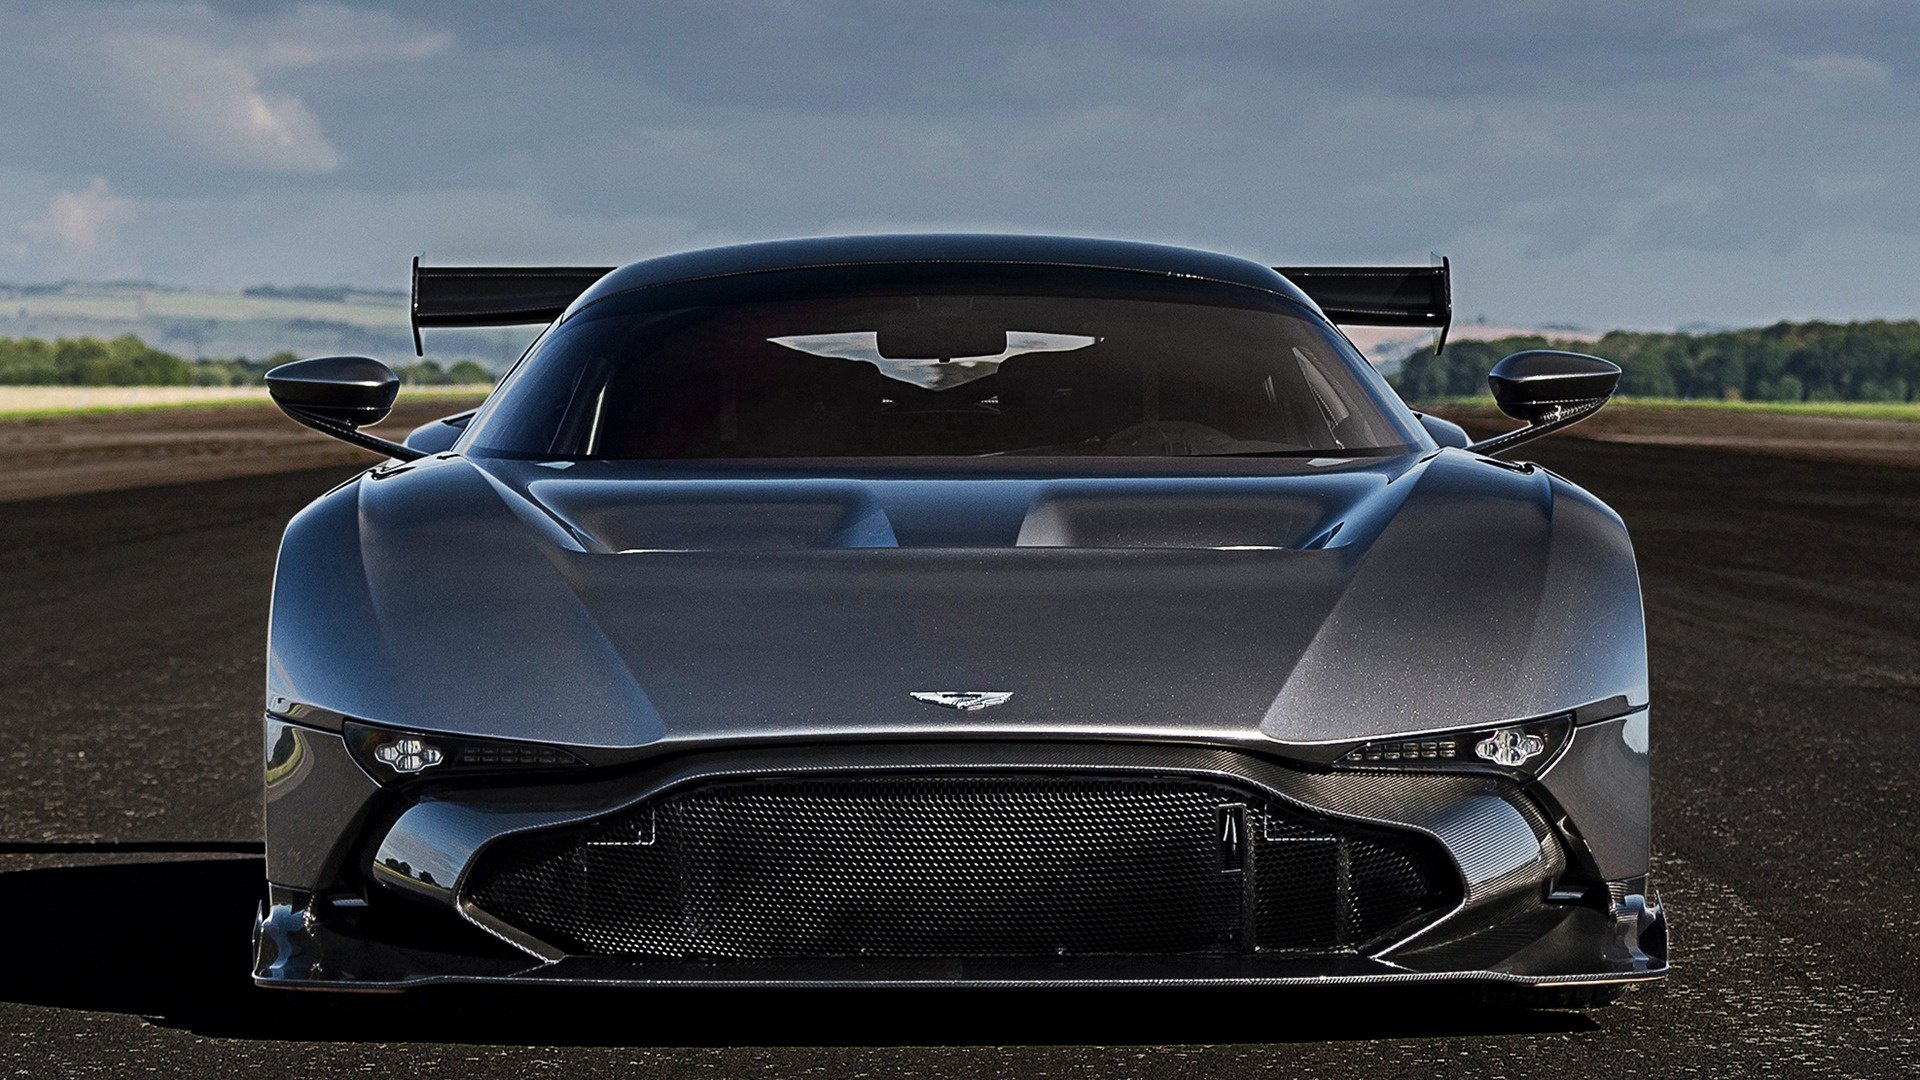 World Car Kia >> 2015 Aston Martin Vulcan - Wallpapers and HD Images | Car Pixel